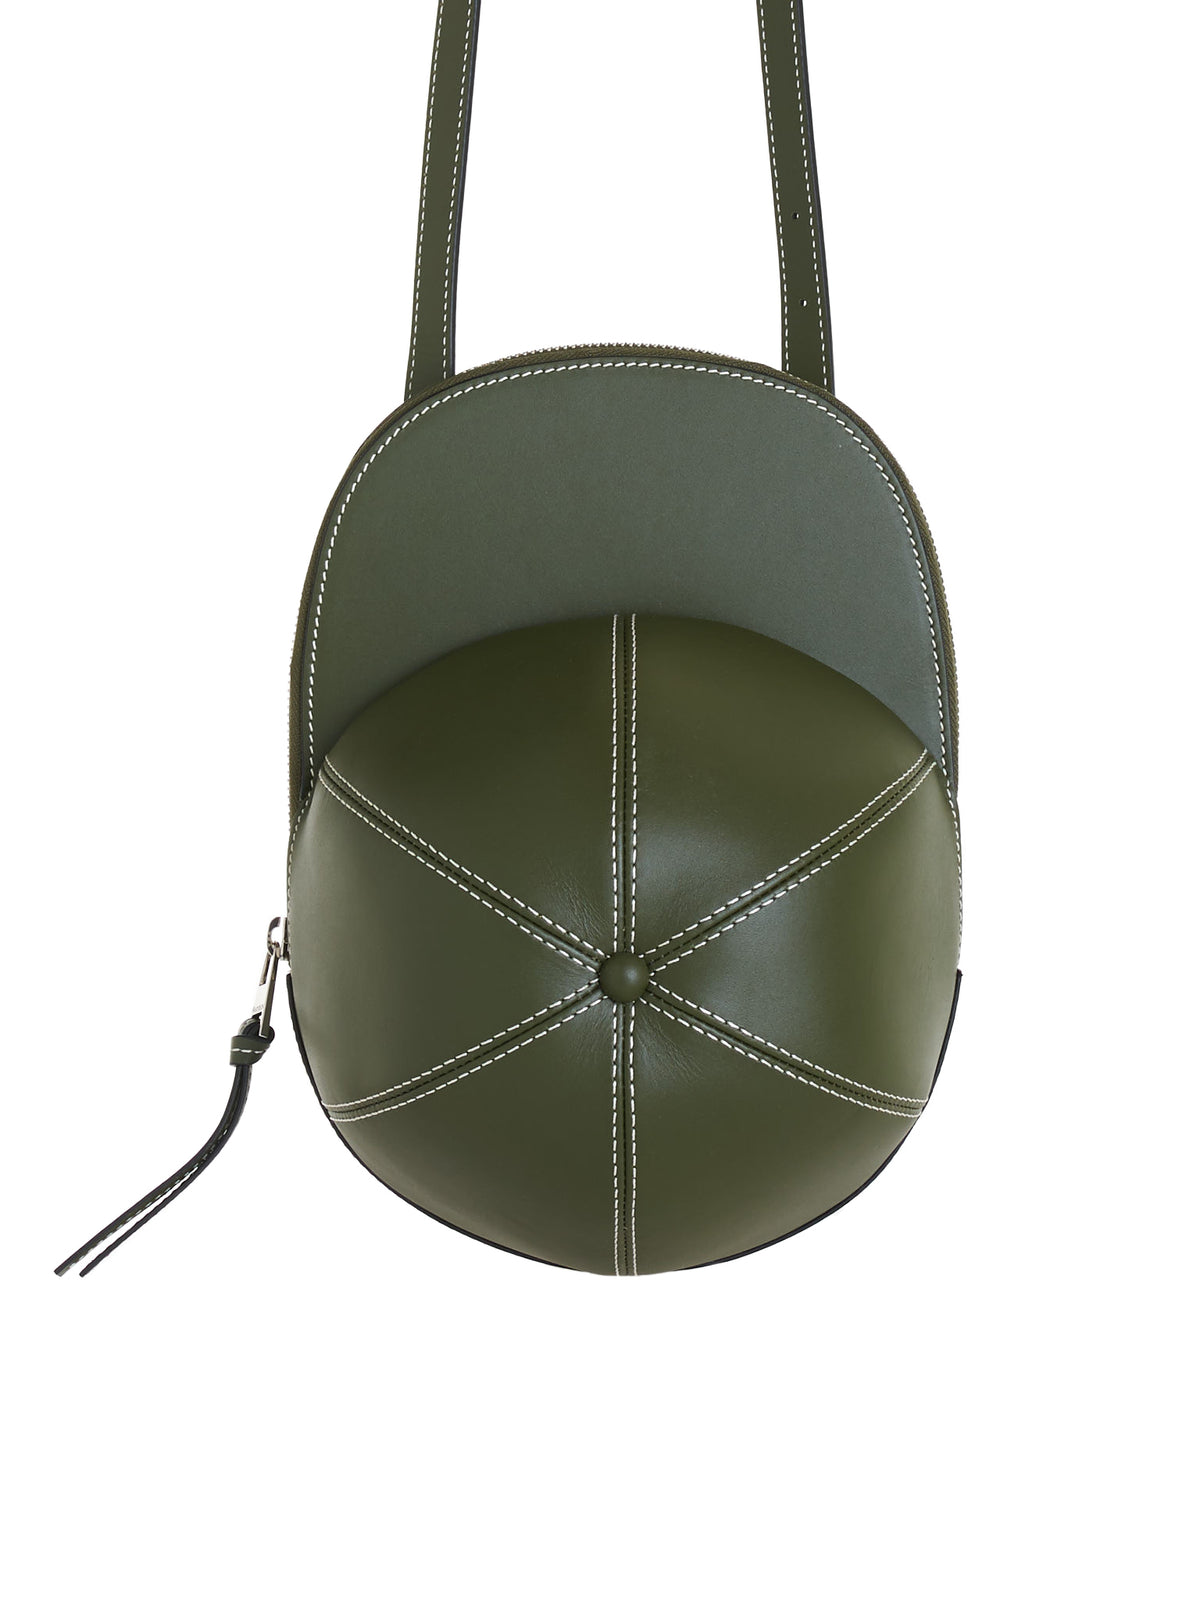 Cap Bag (HB0228-551-ARMY)